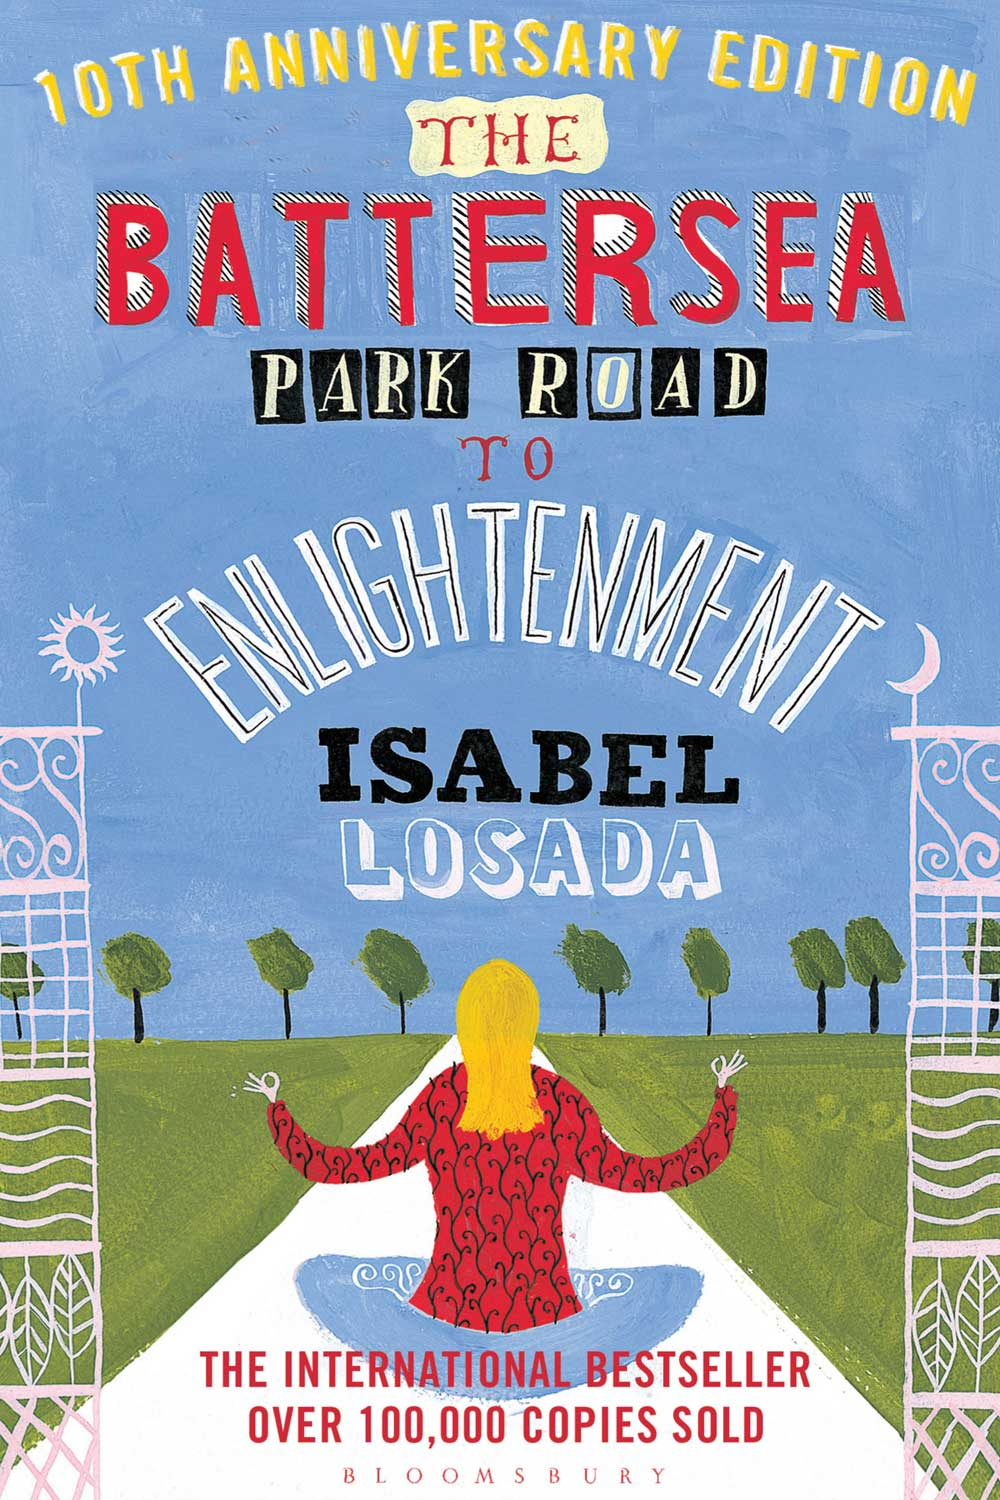 The_Battersea_Park_Road_To_Enlightenment_Isabel_Losada